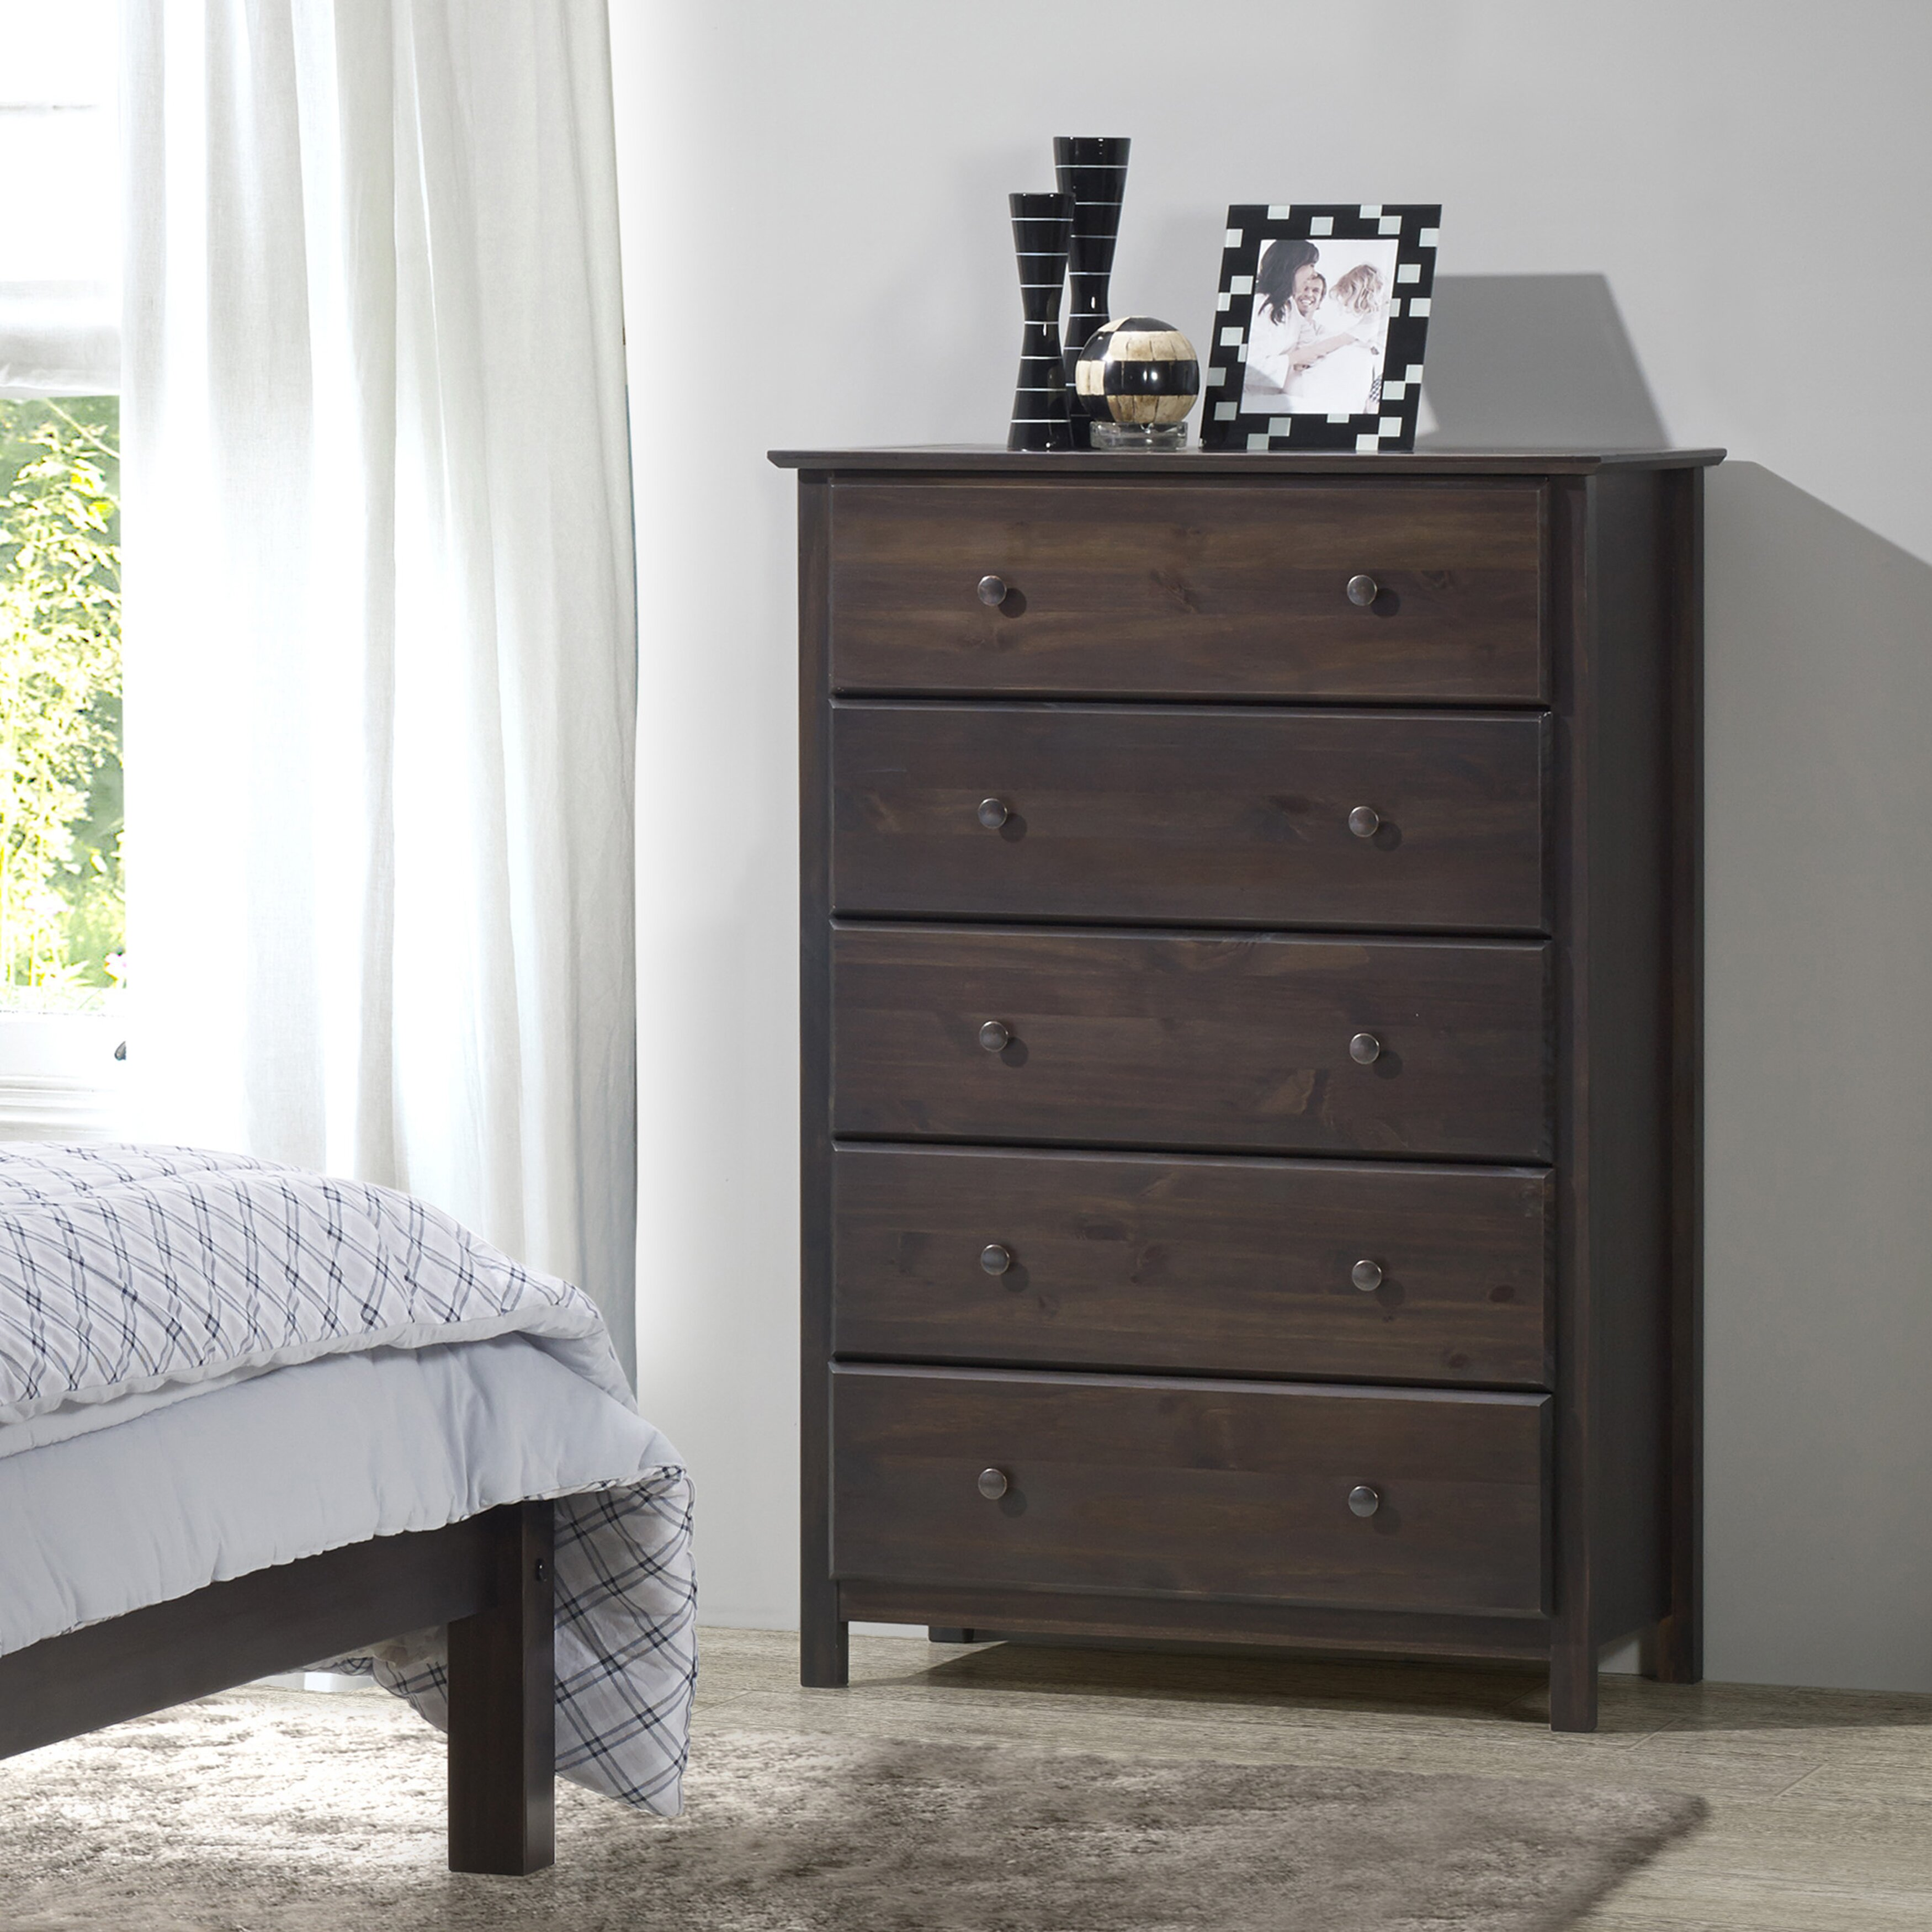 Shaker 5 Drawer Chest. Dressers  amp  Chests of Drawers You  39 ll Love   Wayfair